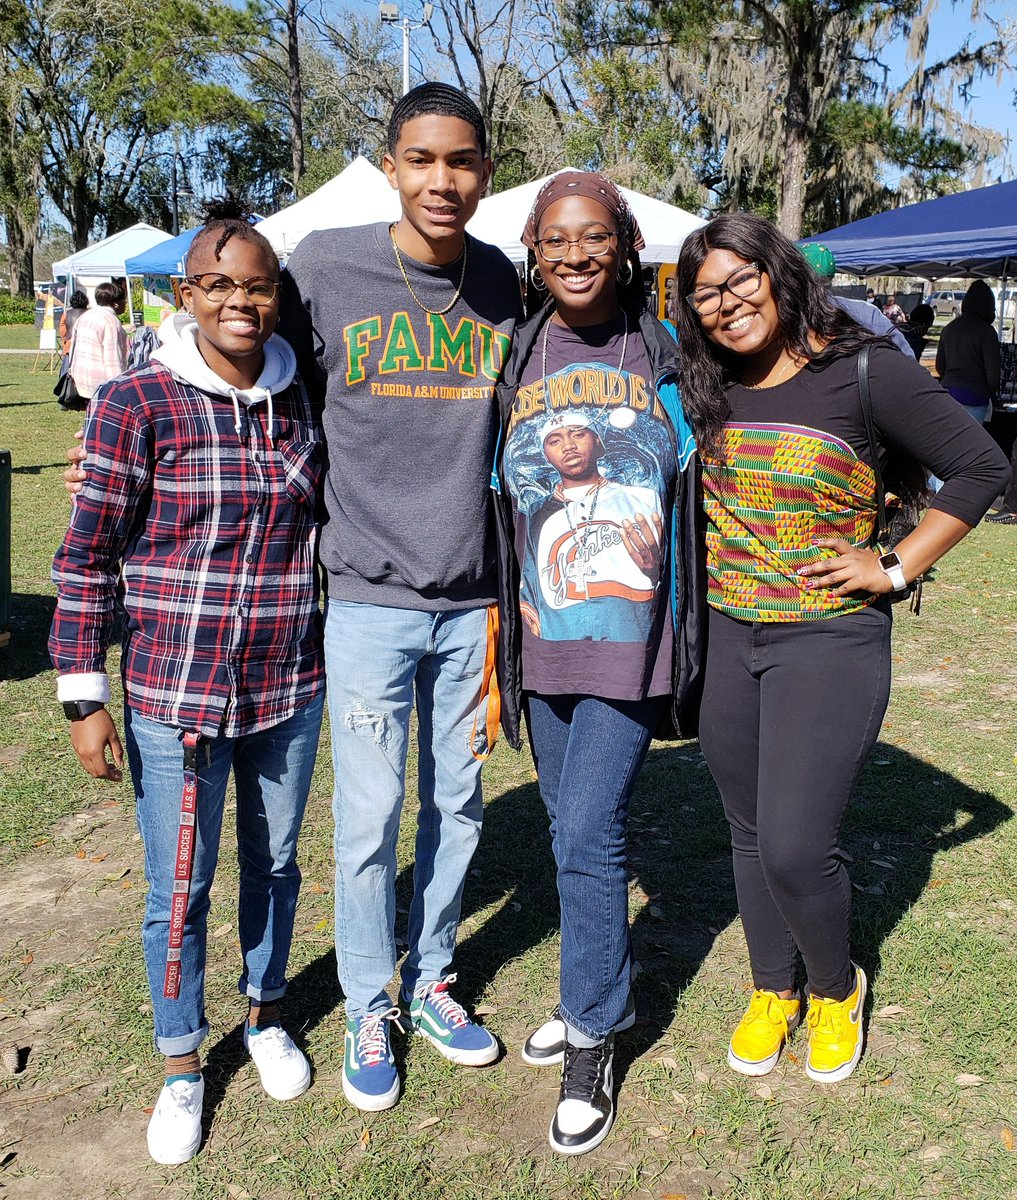 Share your #FAMUharambee moments using the tag. pic.twitter.com/Ev2pKBOkmd